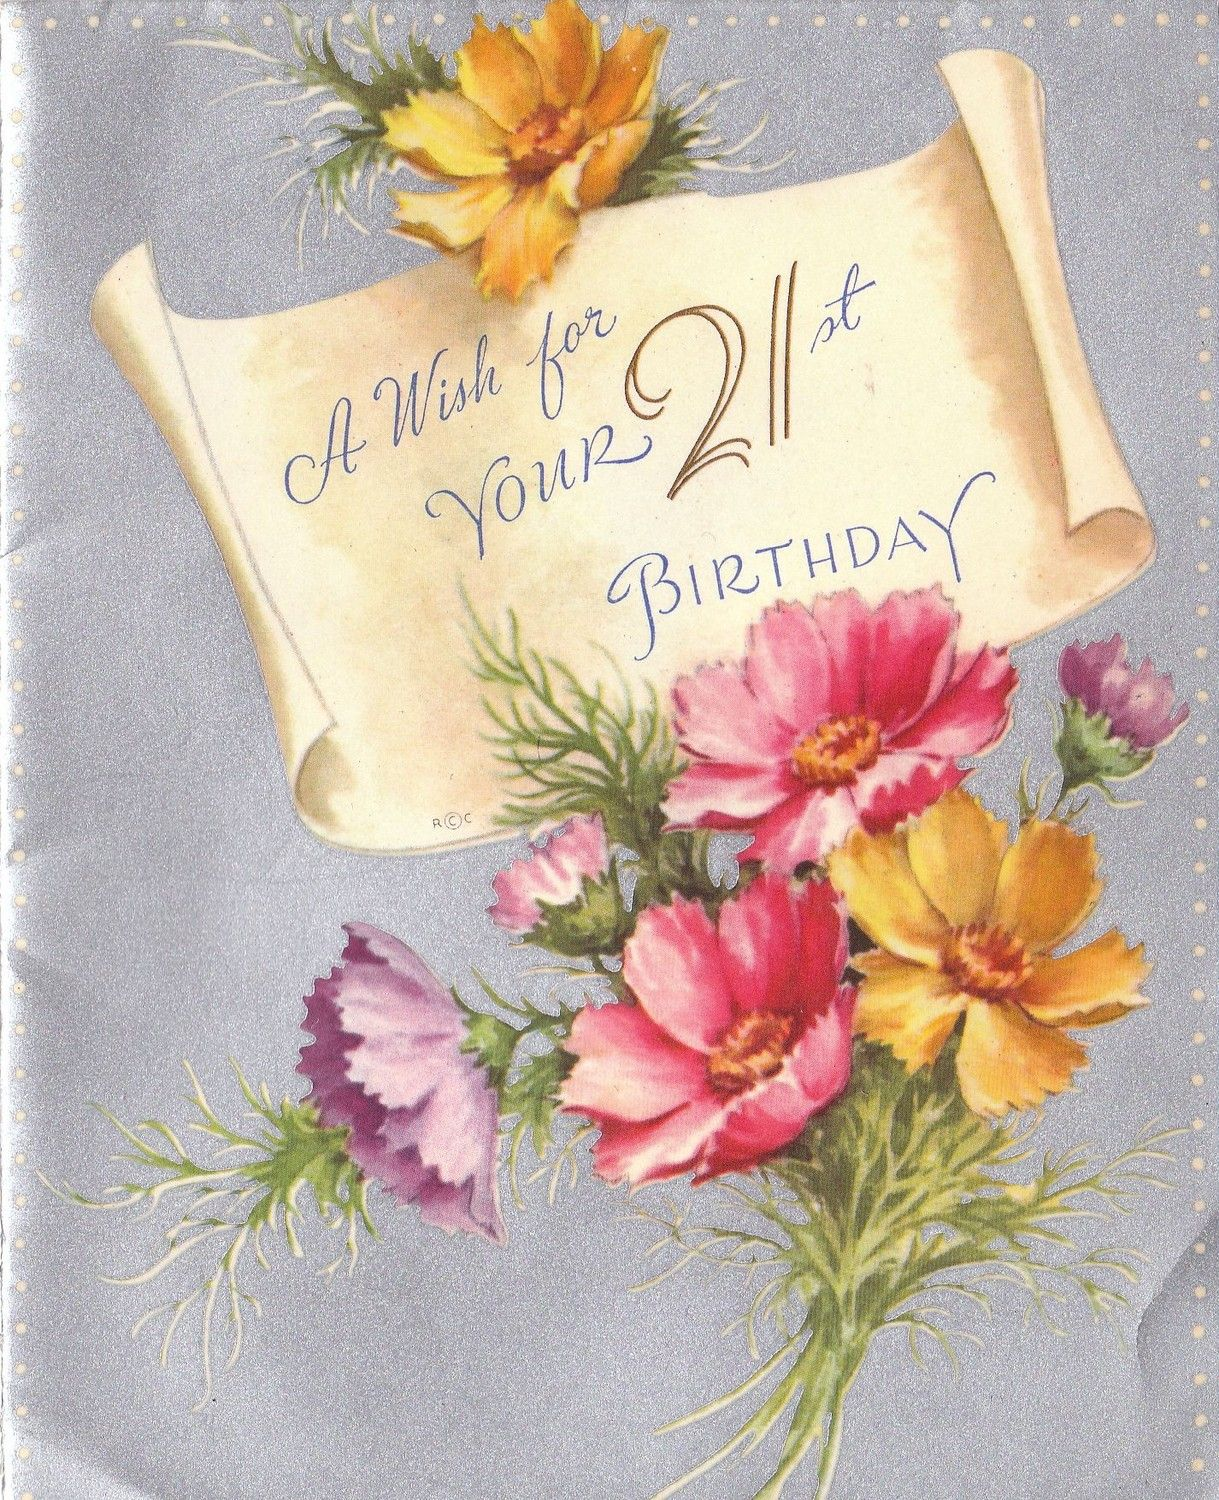 21st birthday greetings 27 best 21st birthday wishes 21st 21st birthday greetings 27 best 21st birthday wishes 21st birthday quotes birthday wishes bookmarktalkfo Image collections